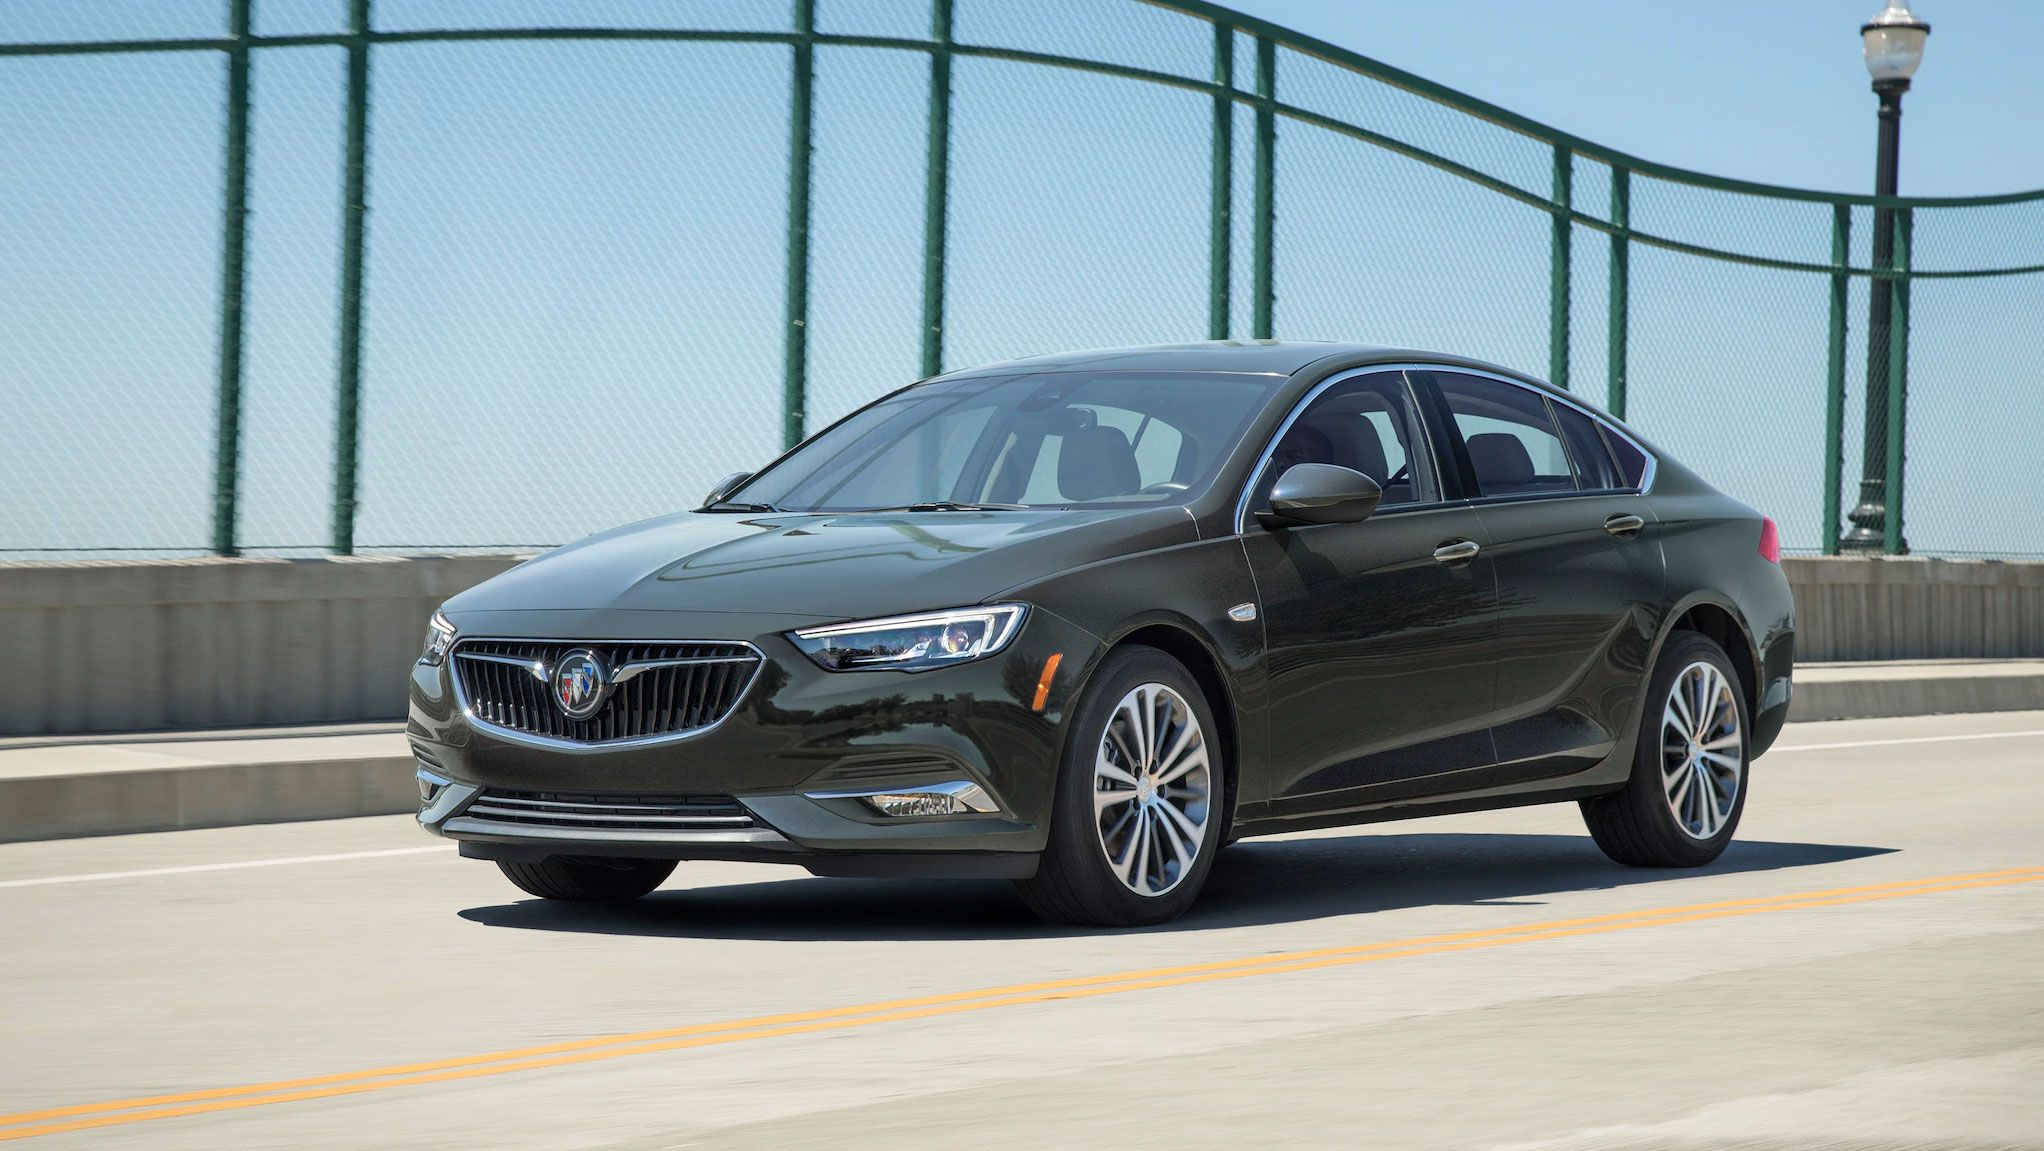 2020 Buick Regal Sportback Review, Pricing, And Specs 2021 Buick Regal Mpg, Engine, Owners Manual